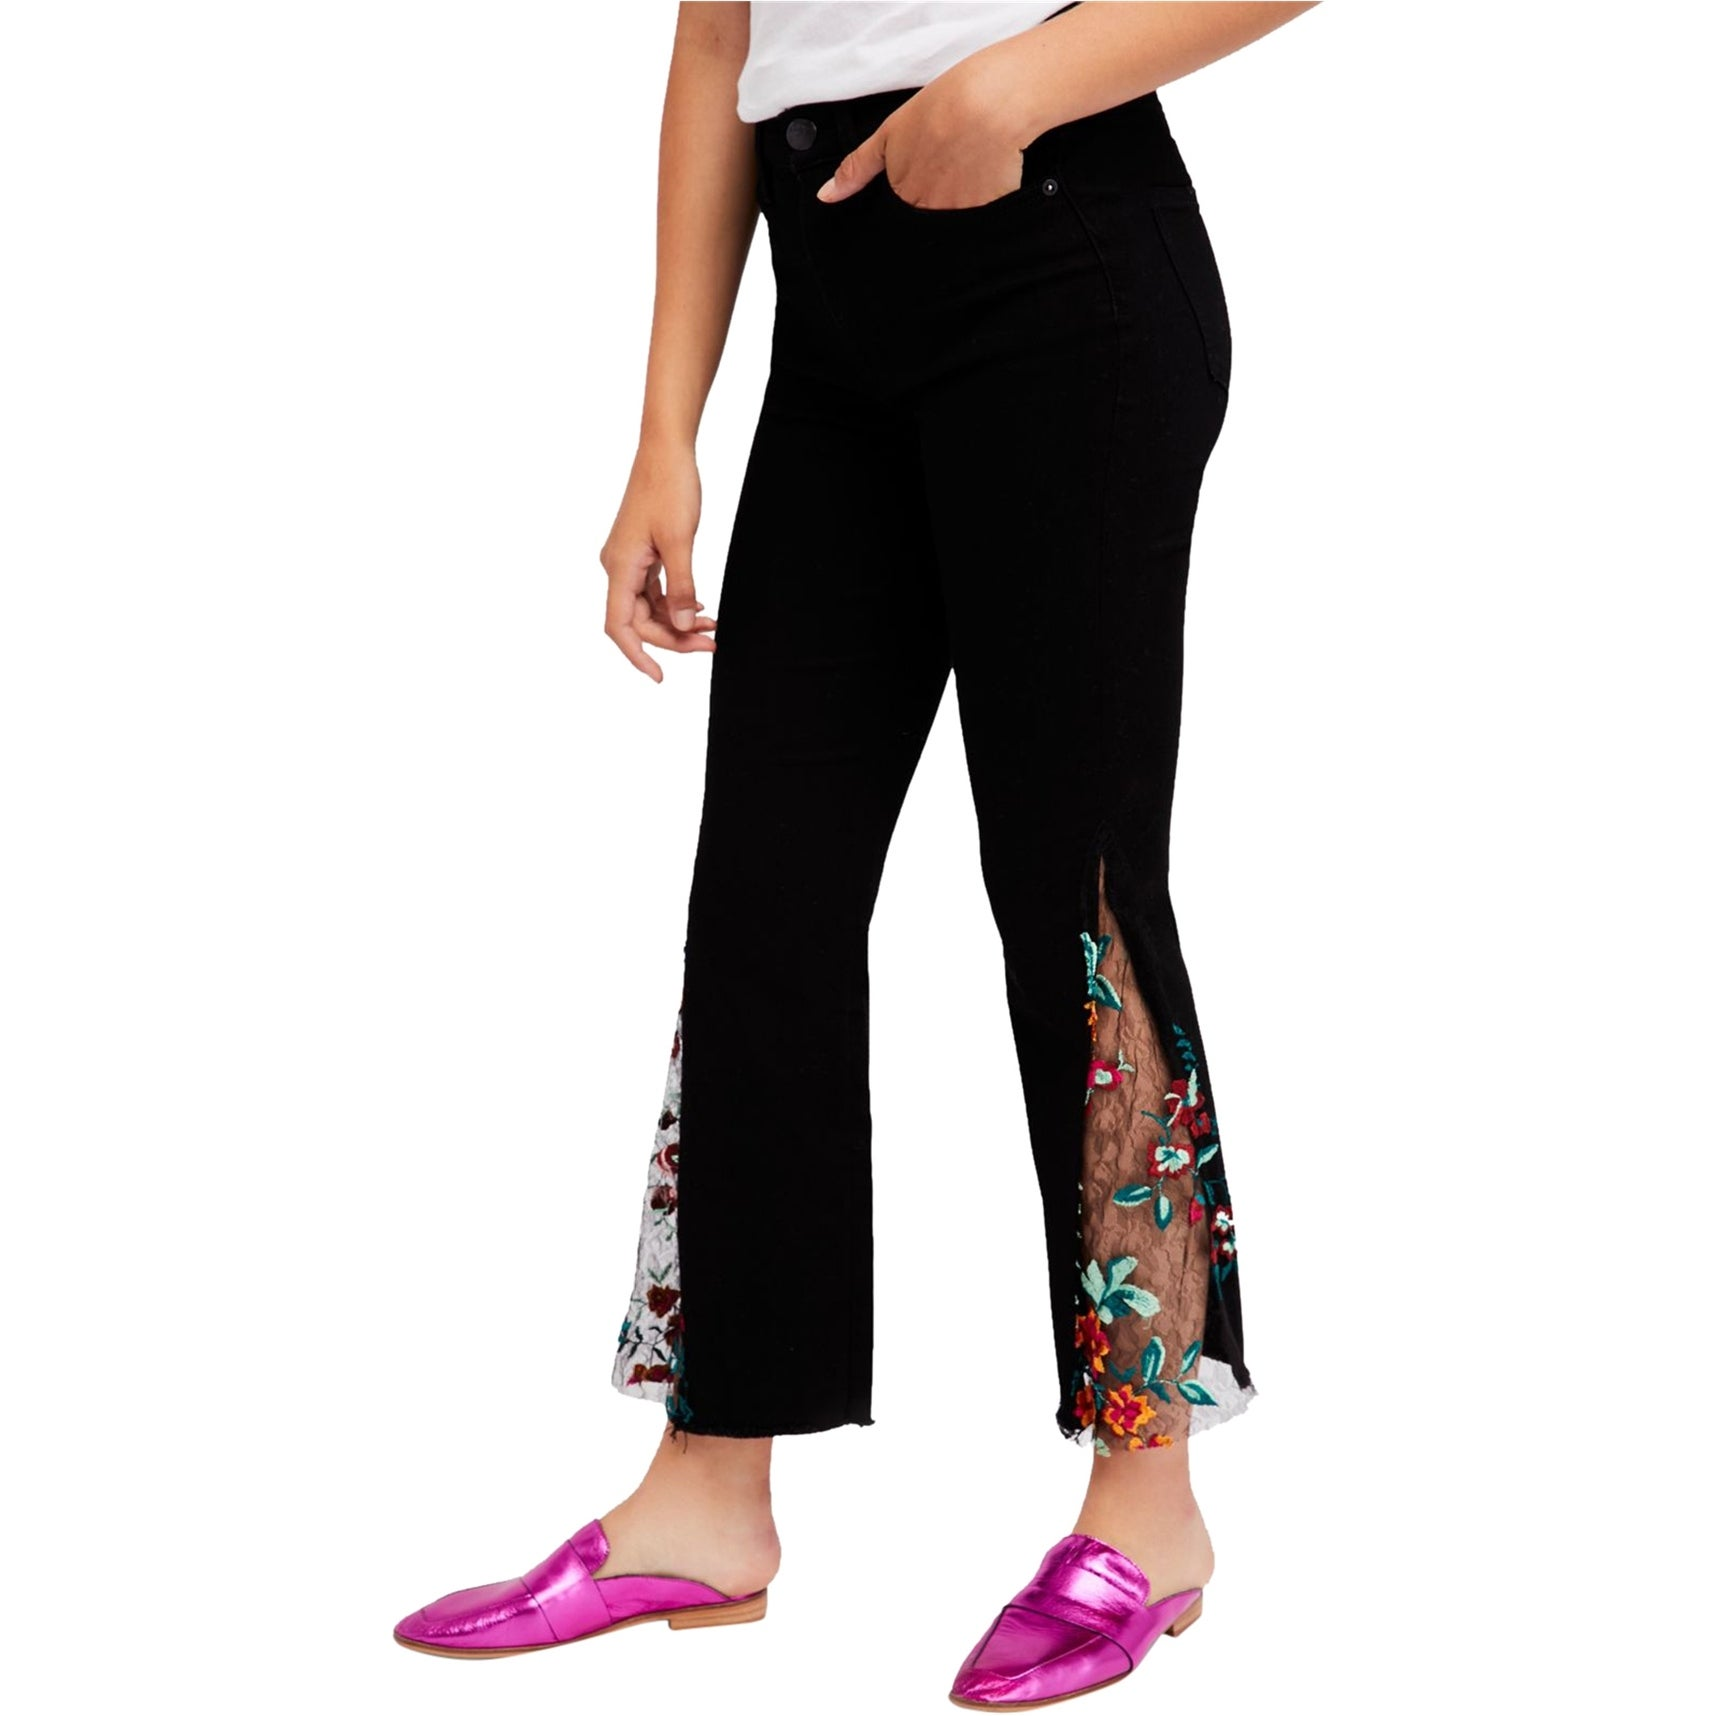 Free People Womens High Rise Embroidered Lace Flare Jeans